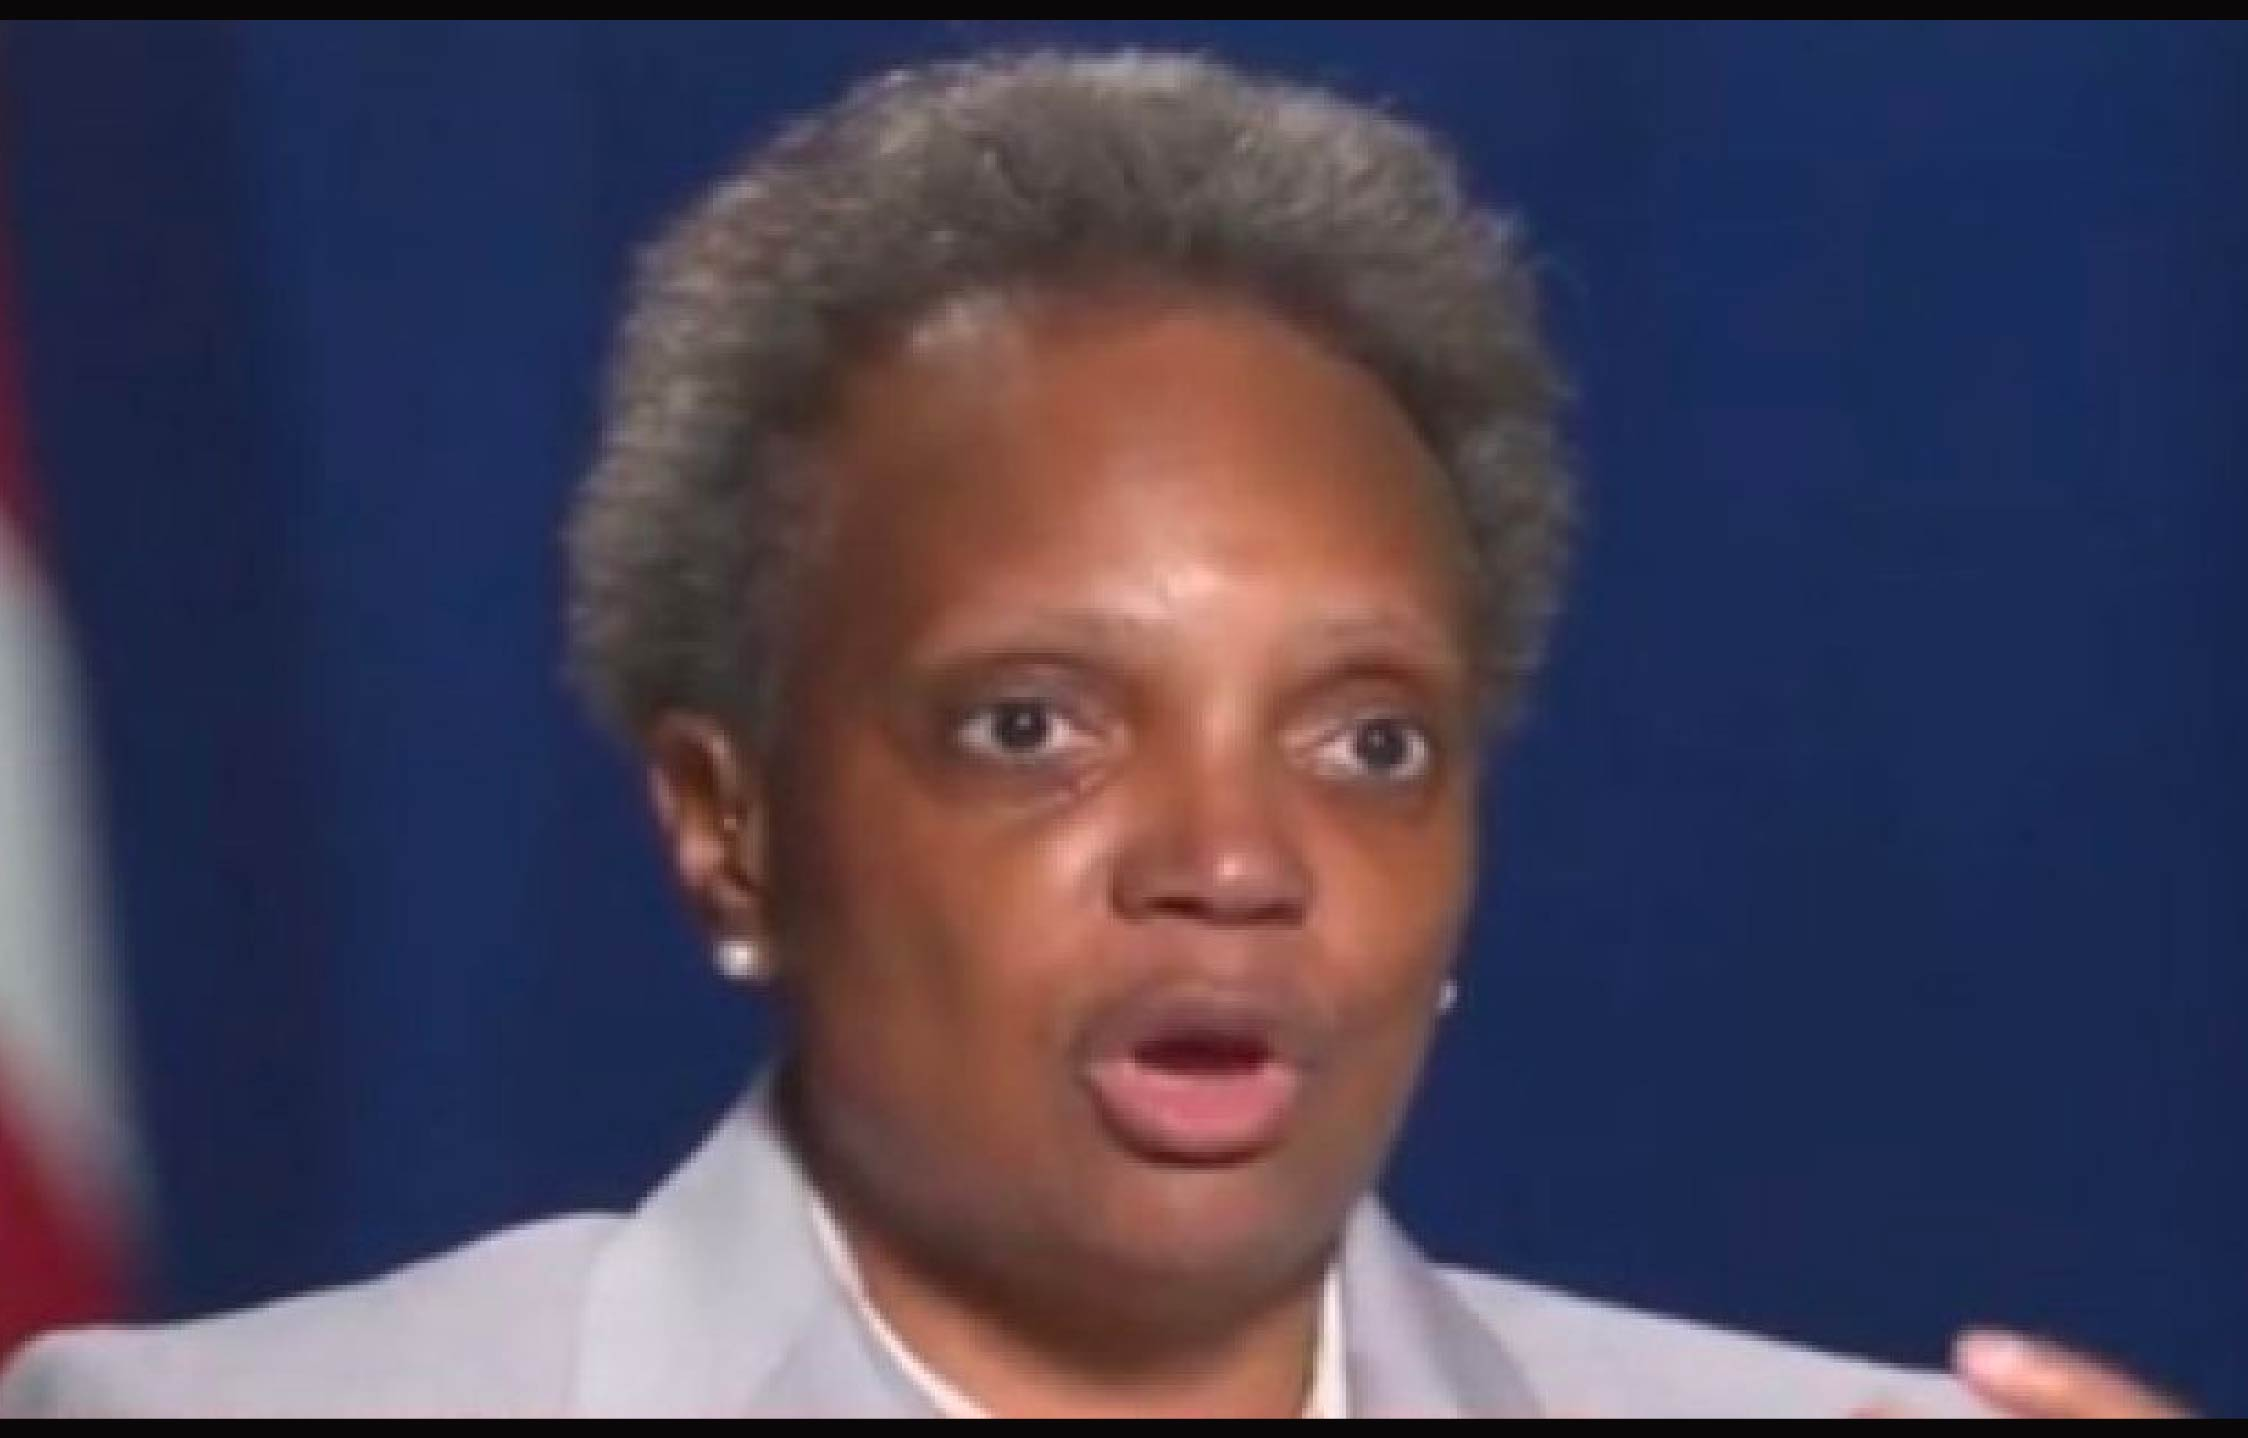 30 Chicago police officers turn their backs on Lori Lightfoot inside the hospital after two police shots (photo)